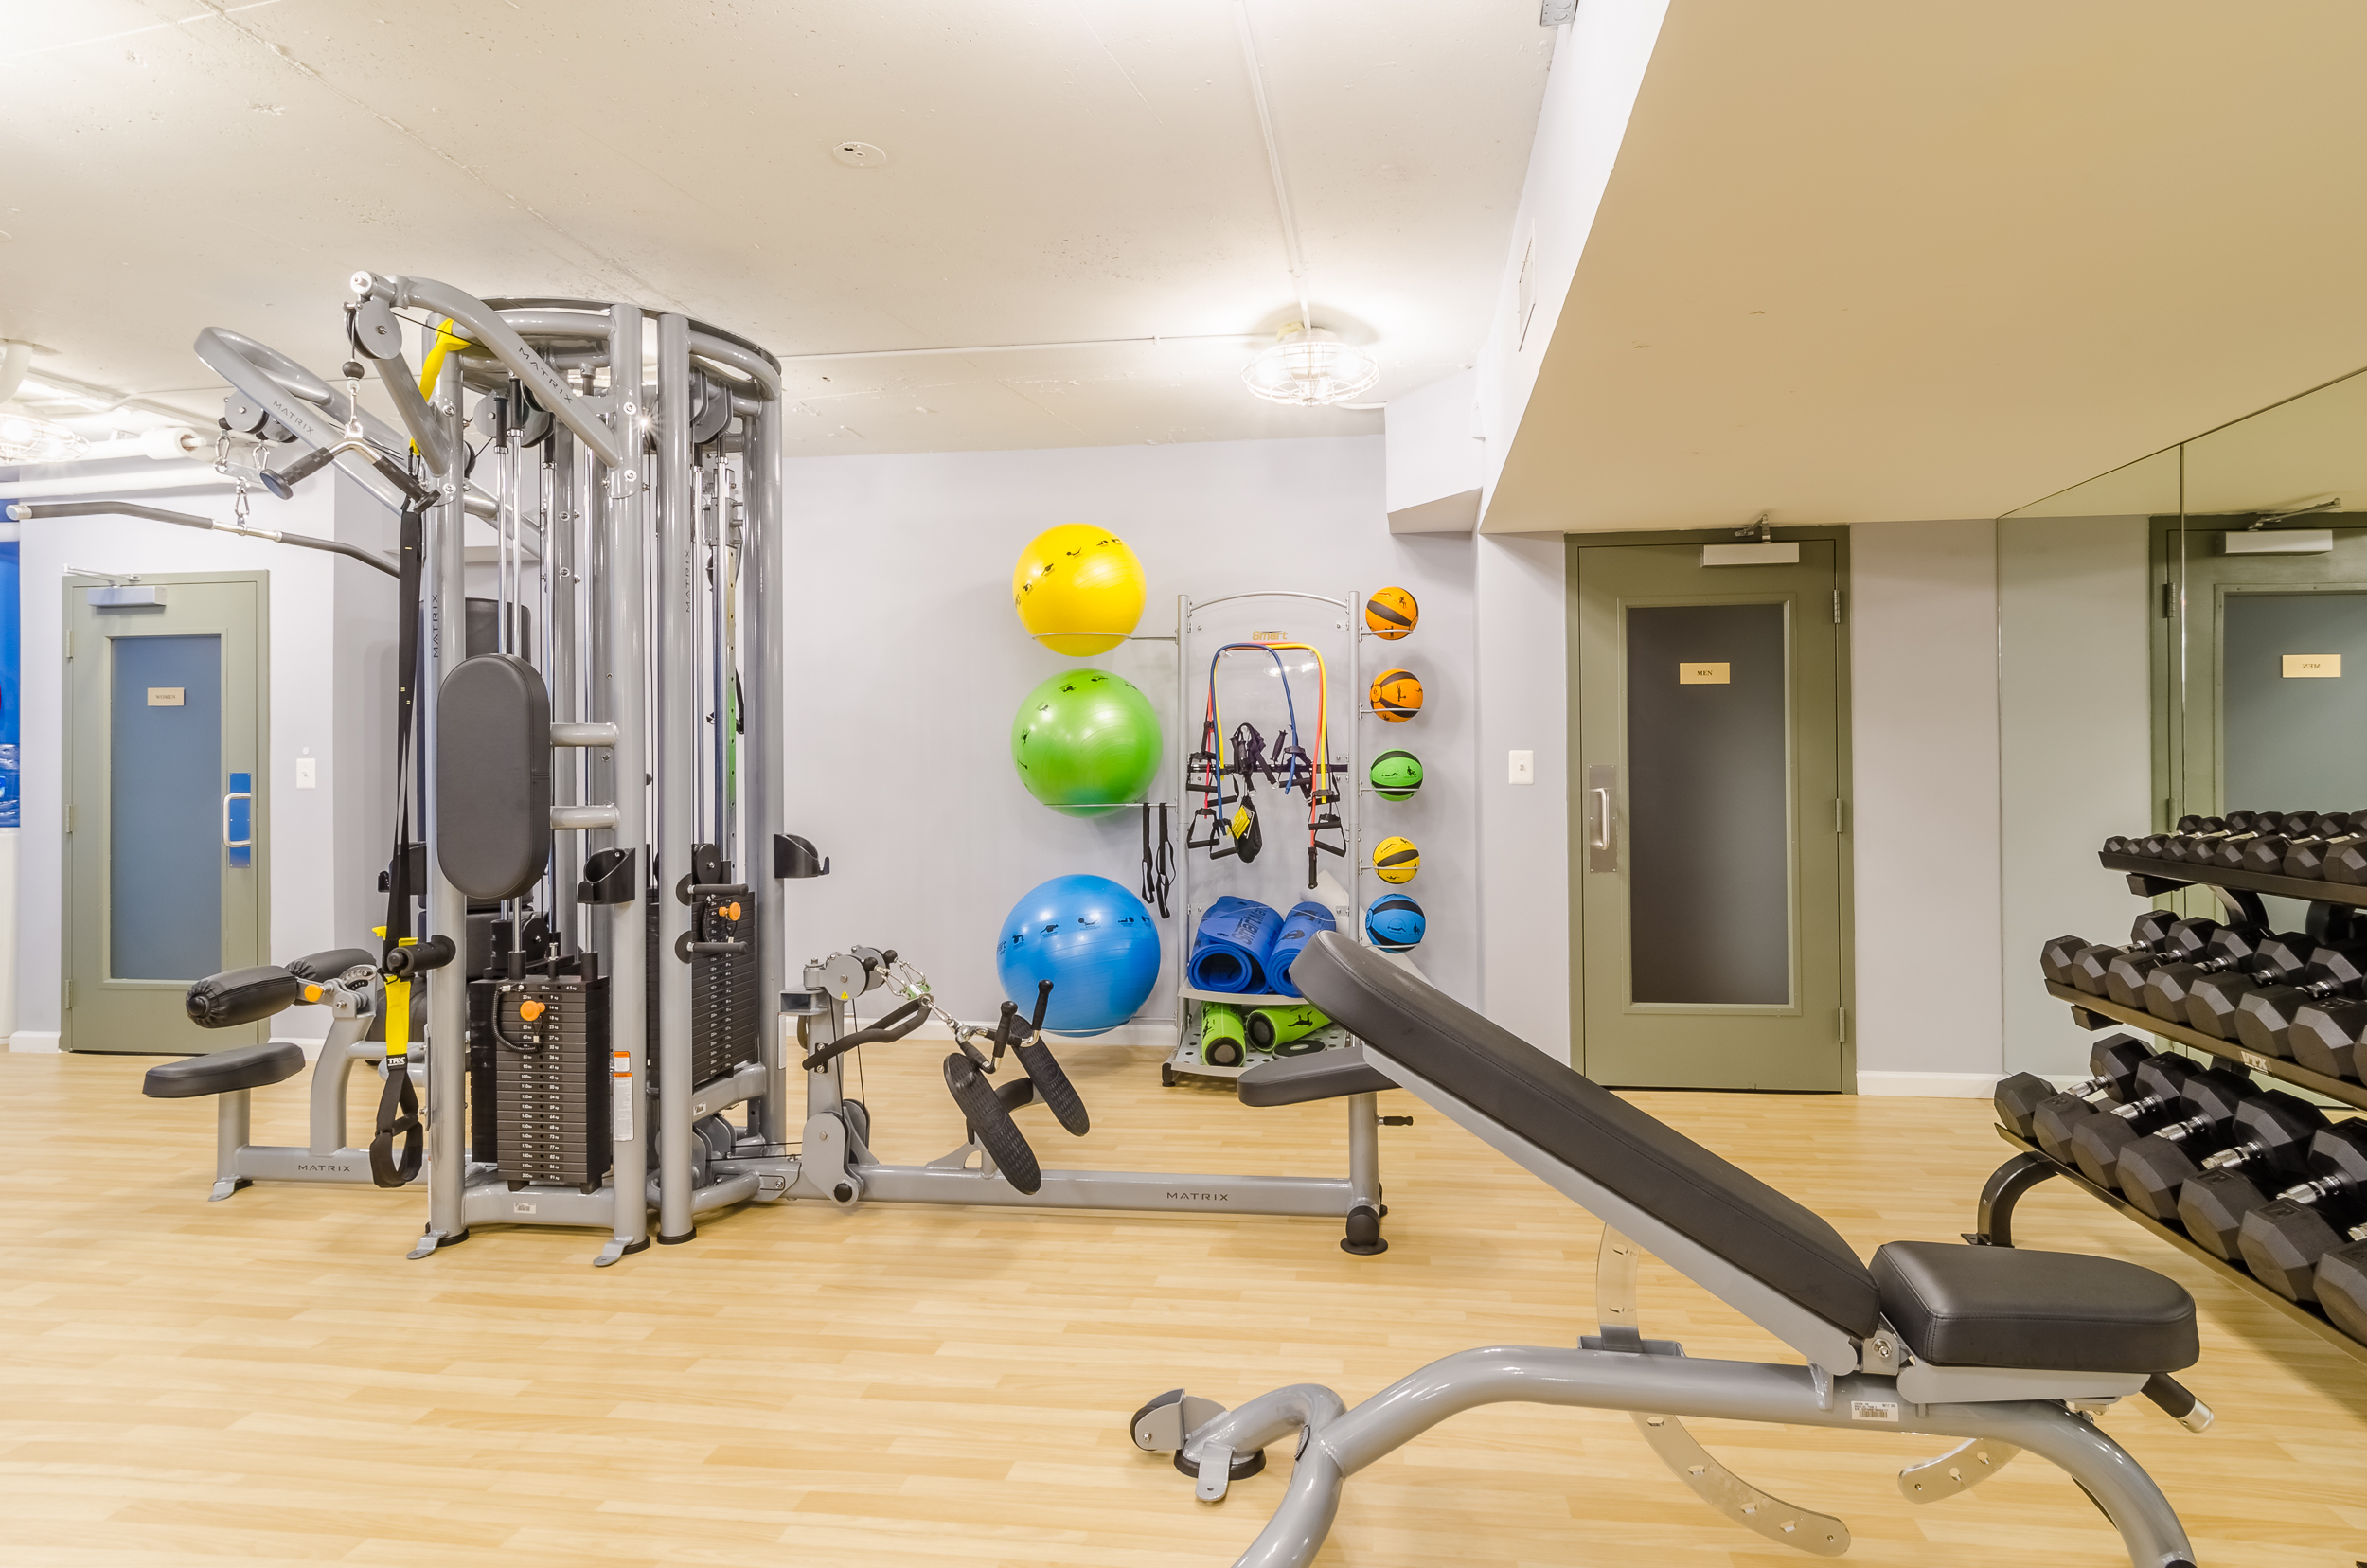 21_Watergate South Fitness Center 02.jpg